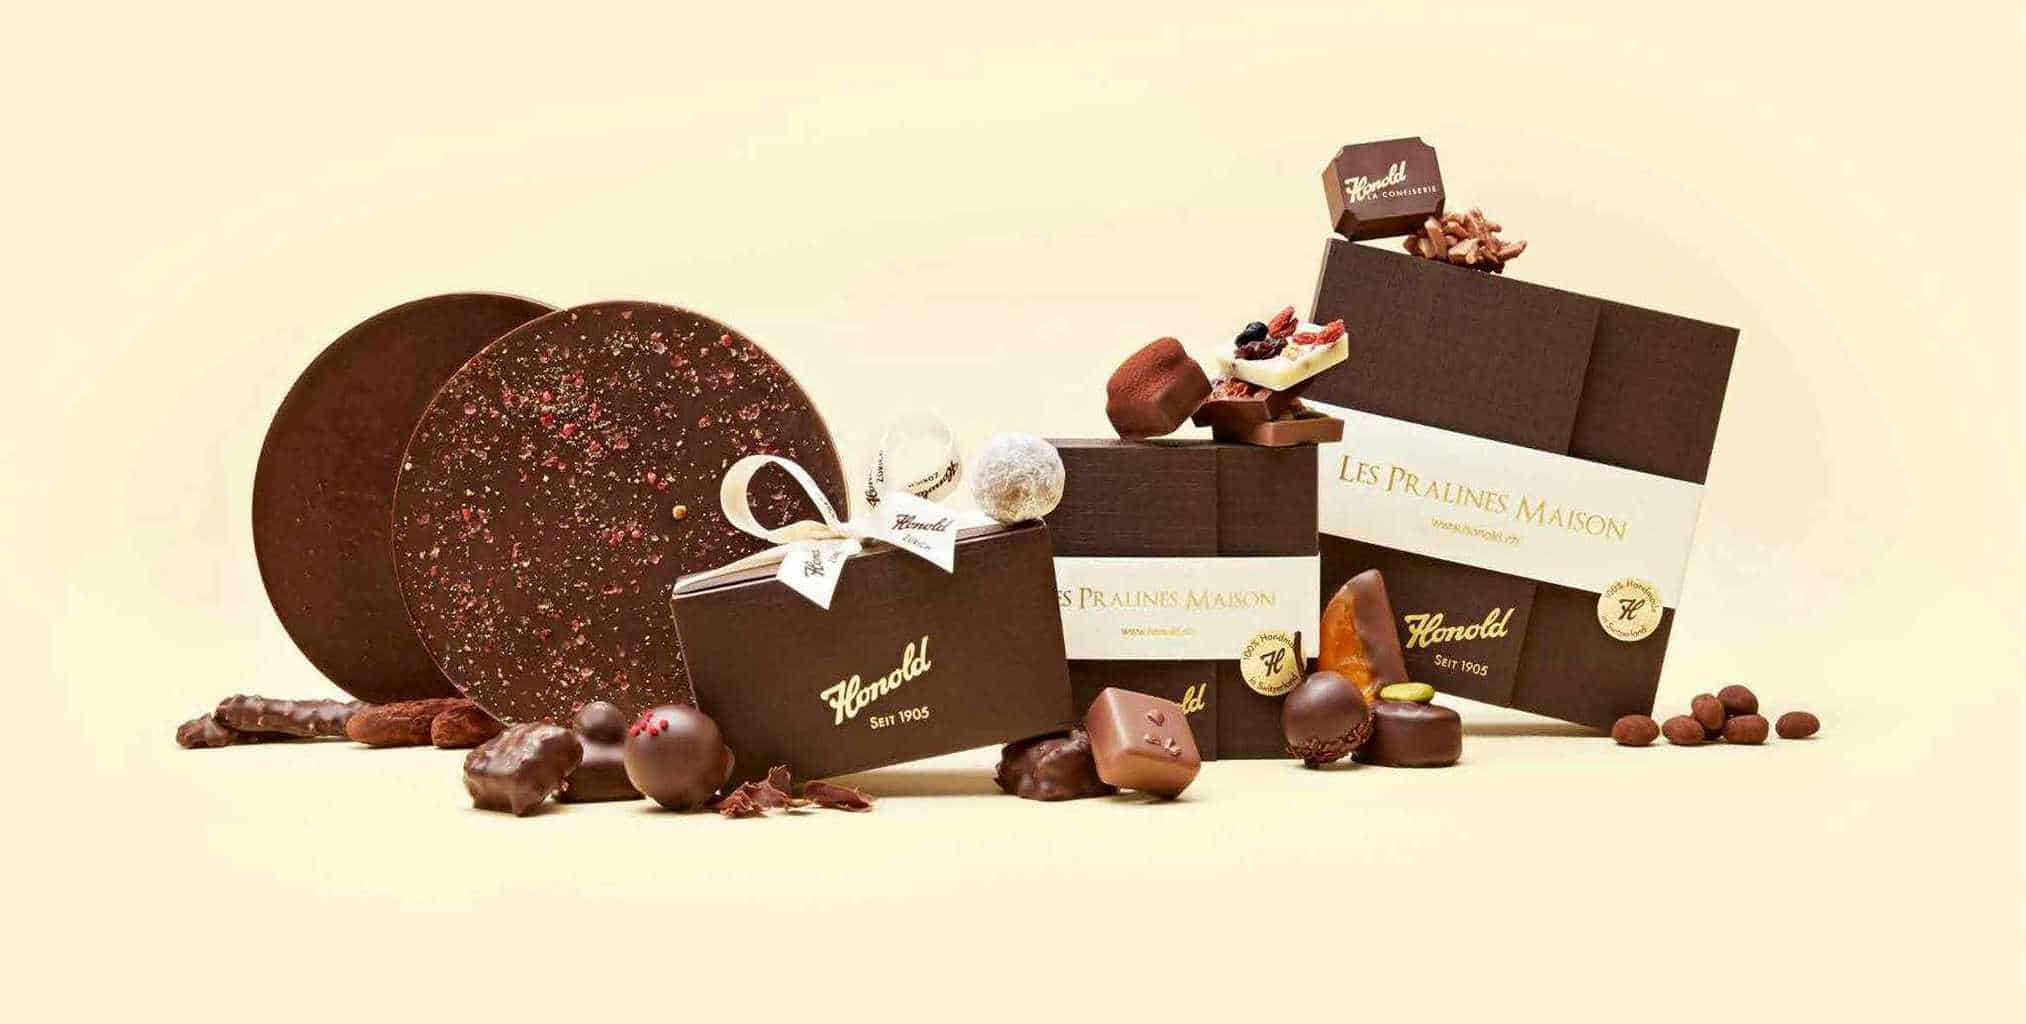 Confiserie Honold Chocolate zurich